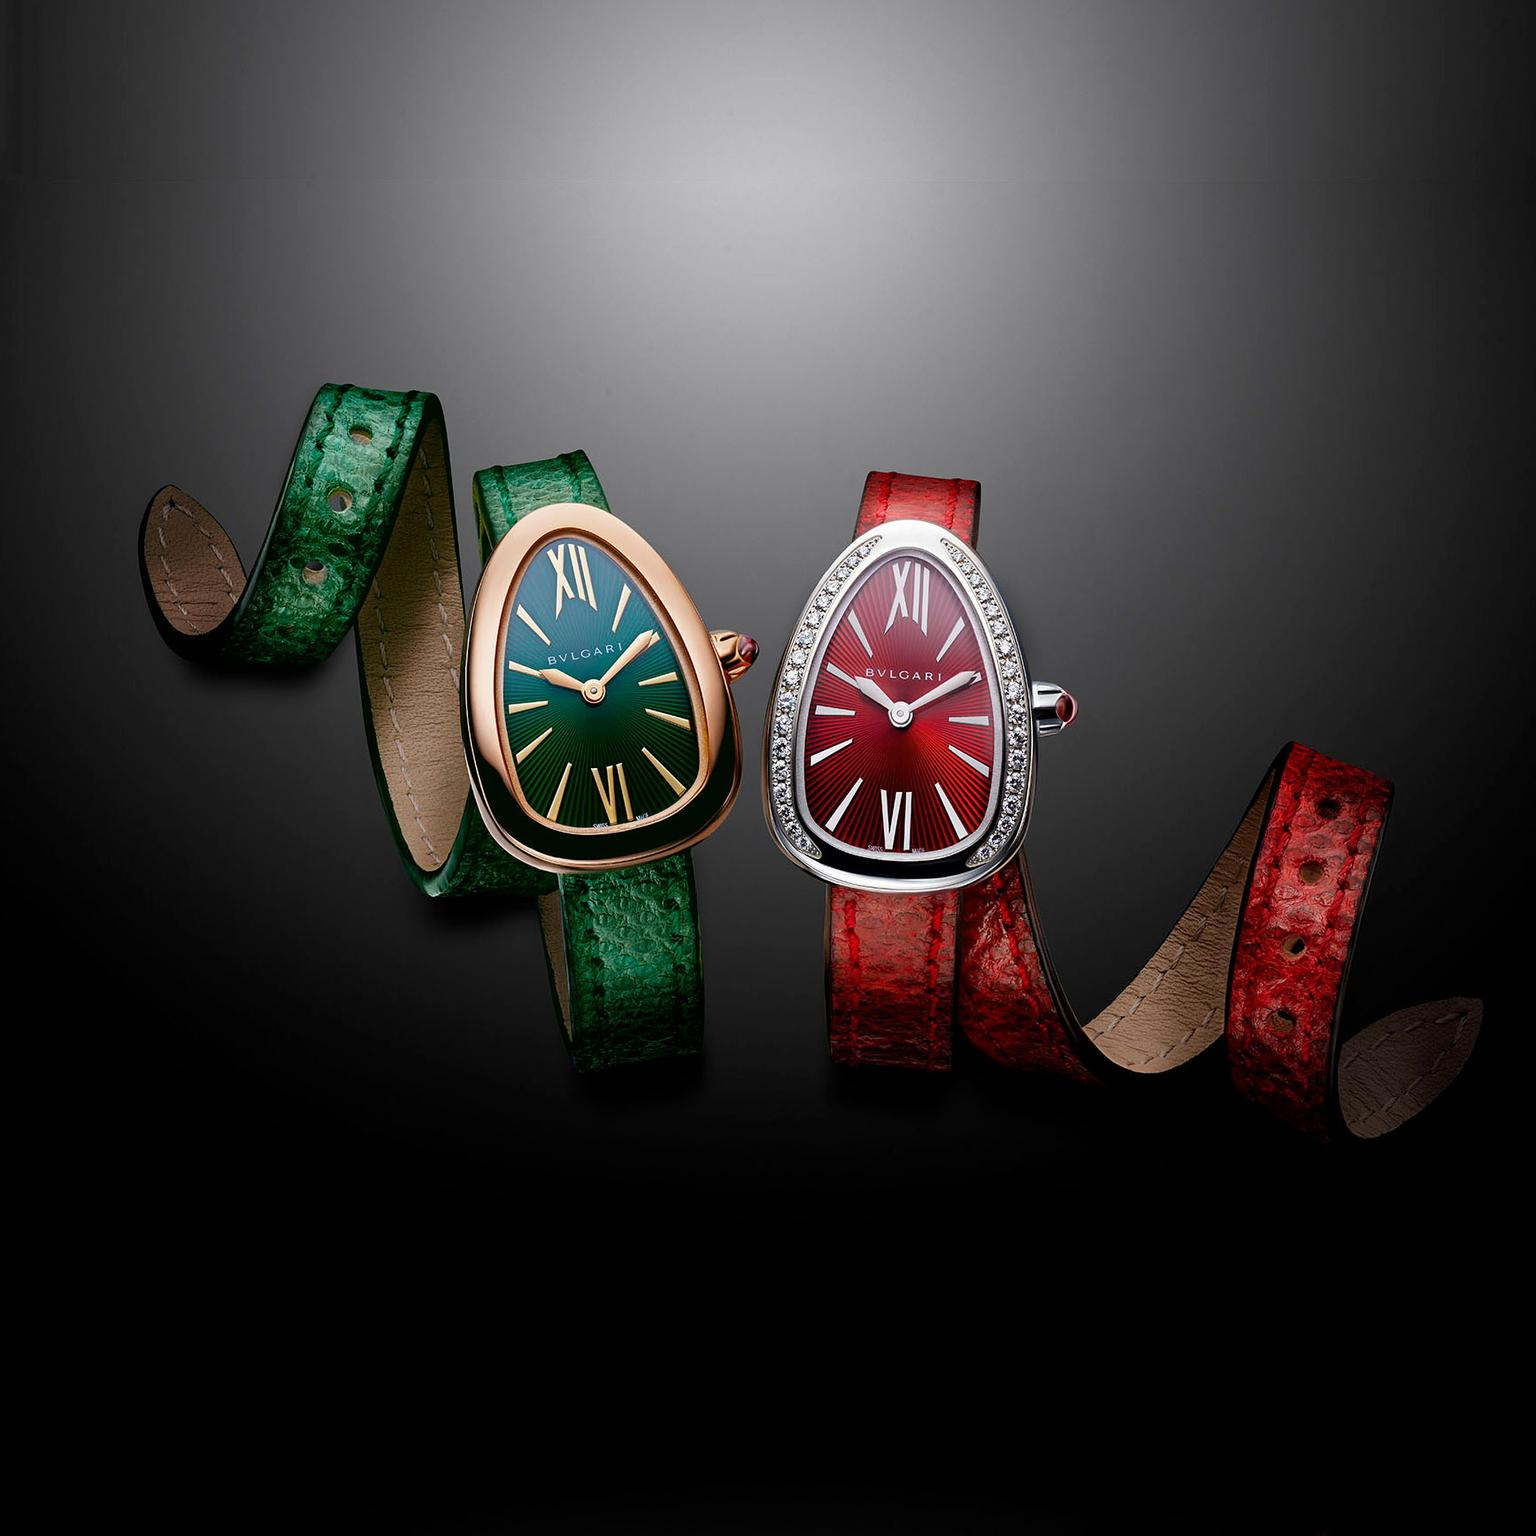 Bulgari Serpenti Karung collection with snakeskin straps